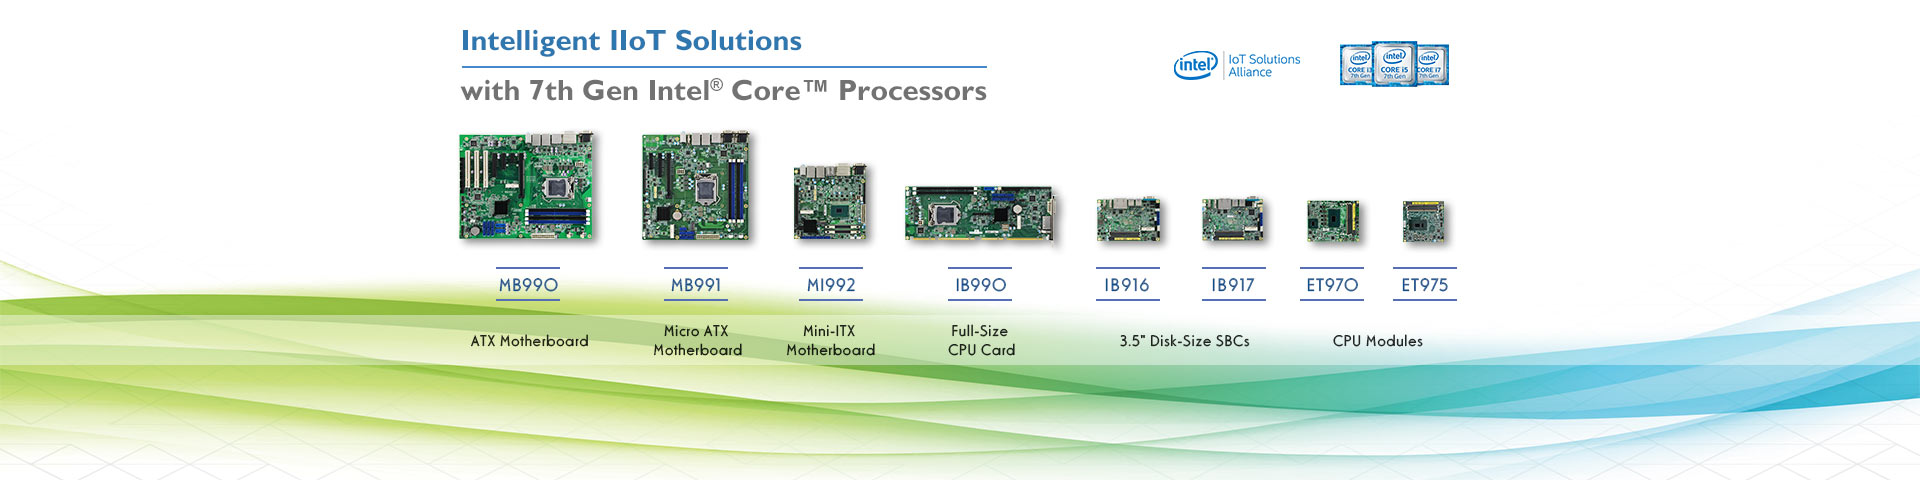 IBASE Intelligent IIoT Solutions with 7th Gen Intel® Core™ Processors